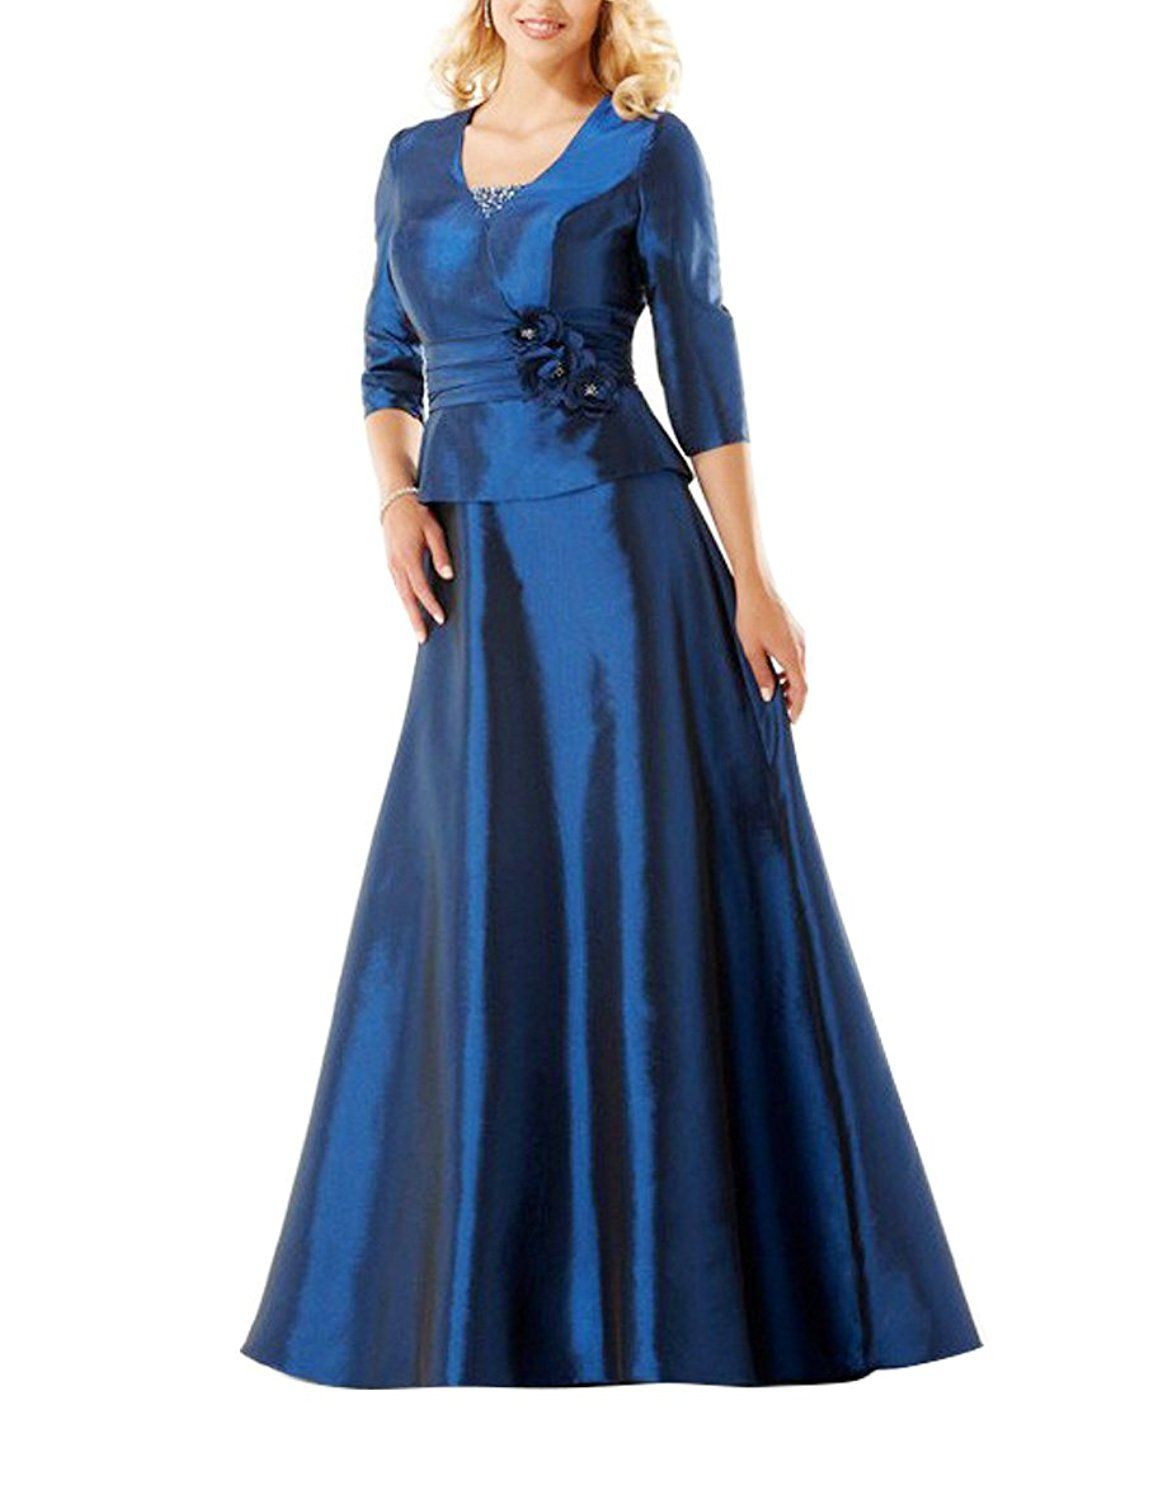 4a5fbd1f5f9 MIGUOO Wedding Party Evening Formal Dresses For Women With Sleeve  shopwp0299   Check this awesome image